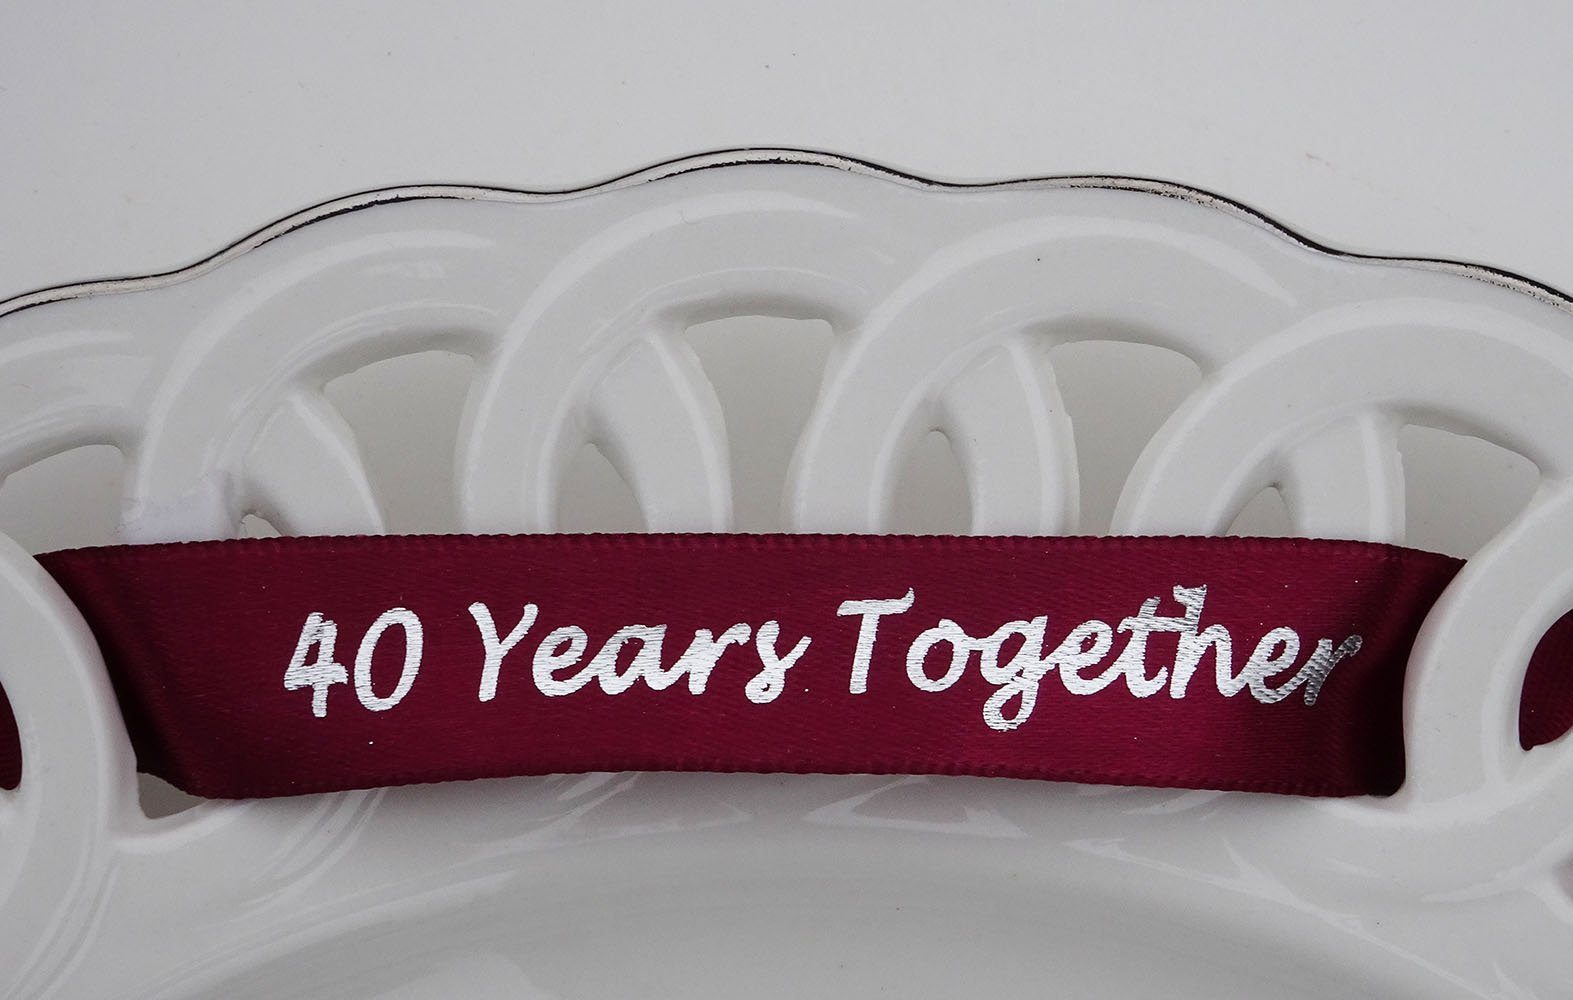 40th Anniversary Plate - Porcelain Heart Shaped Plate for 40th Anniversary Gift by Jubilee Celebrations by Wellhaven (Image #1)